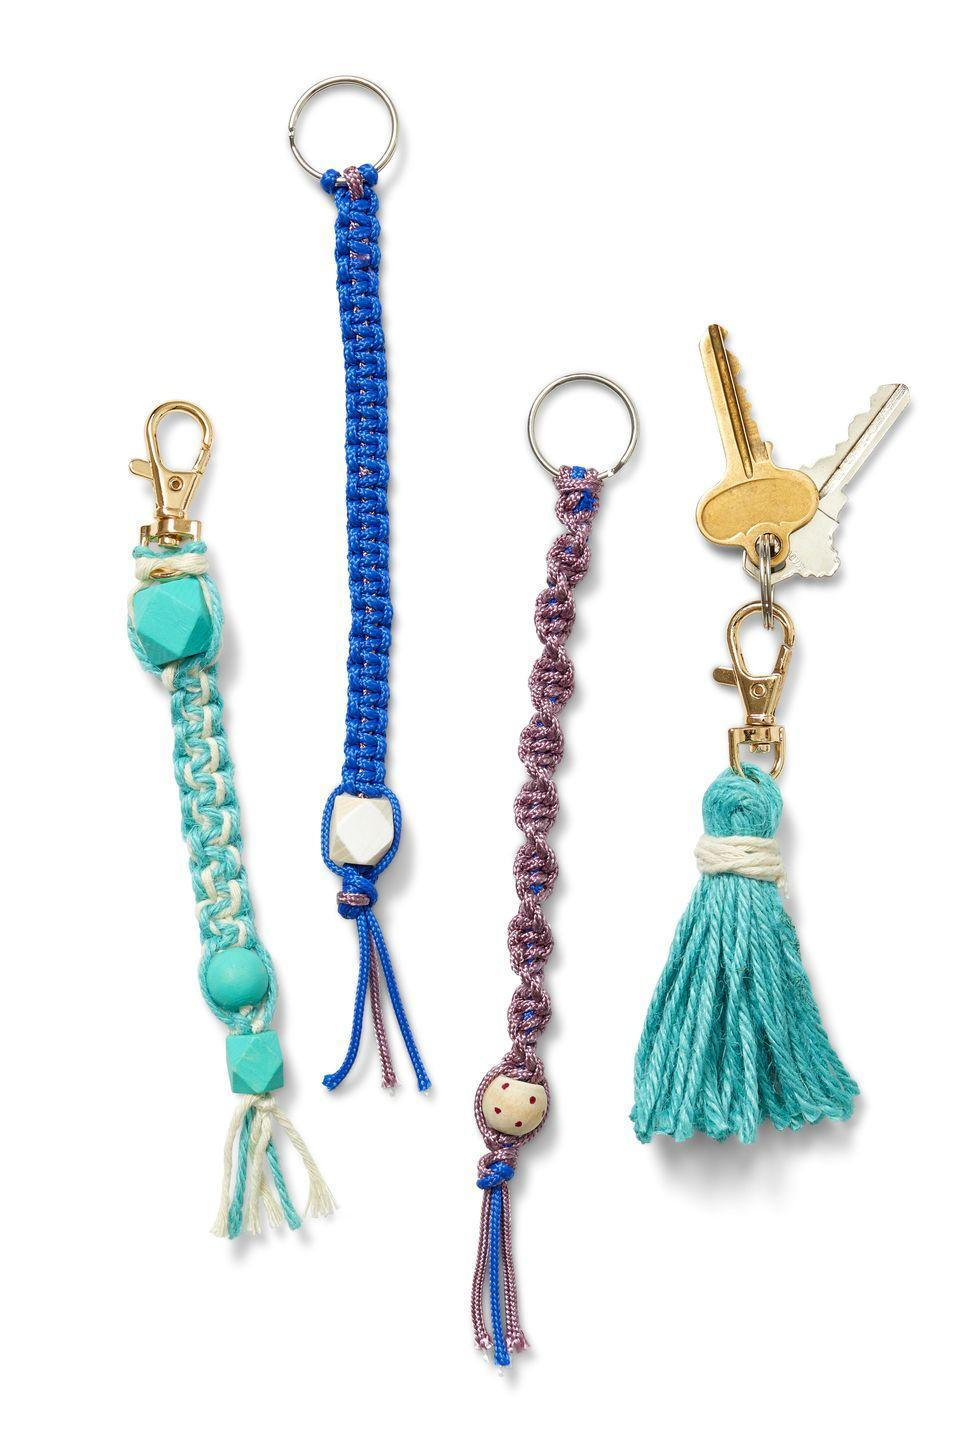 """<p>Channel your summer camp craft skills, and make a <a href=""""http://blog.darice.com/kids-crafts/how-to-make-boondoggle-keychains/"""" rel=""""nofollow noopener"""" target=""""_blank"""" data-ylk=""""slk:cute woven lanyard"""" class=""""link rapid-noclick-resp"""">cute woven lanyard</a> or <a href=""""https://www.kenarry.com/diy-tassel-keychains/"""" rel=""""nofollow noopener"""" target=""""_blank"""" data-ylk=""""slk:tassel keychain"""" class=""""link rapid-noclick-resp"""">tassel keychain</a> — there are tons of great DIY tutorials on YouTube.</p>"""